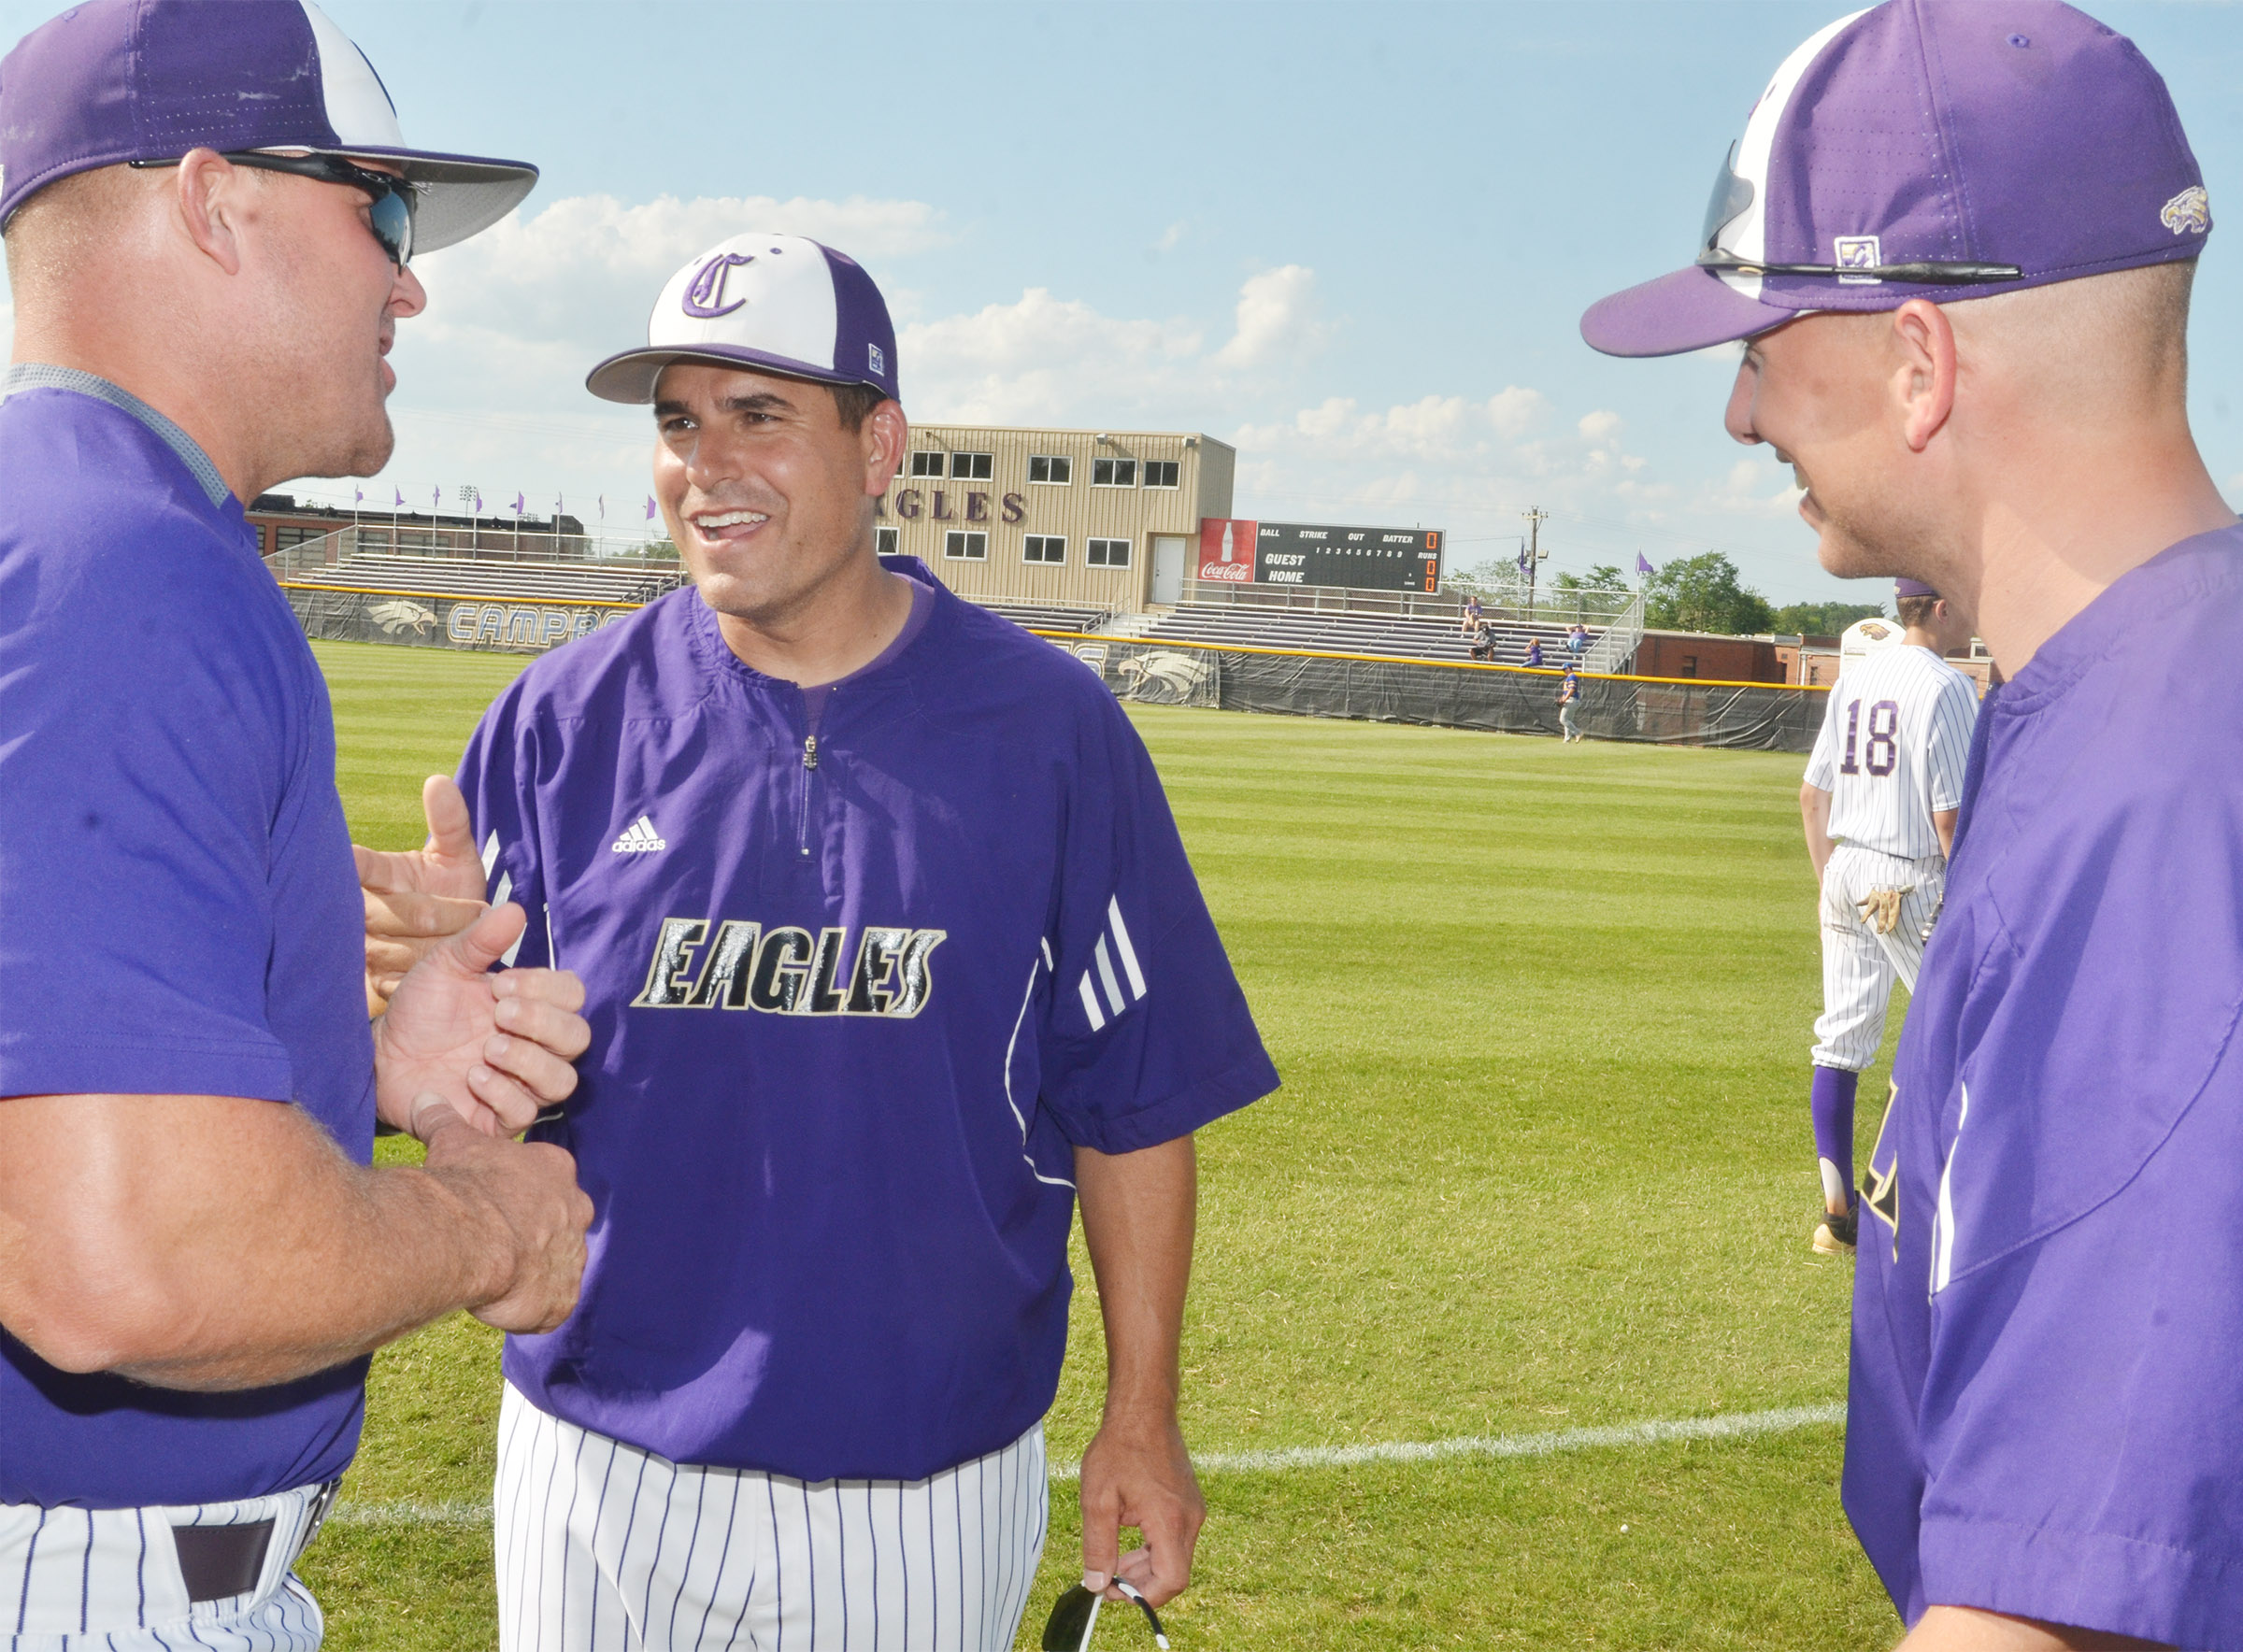 CHS head baseball coach Kirby Smith talks with assistant coaches Daniel Forbis, at left, and Zach Lewis.